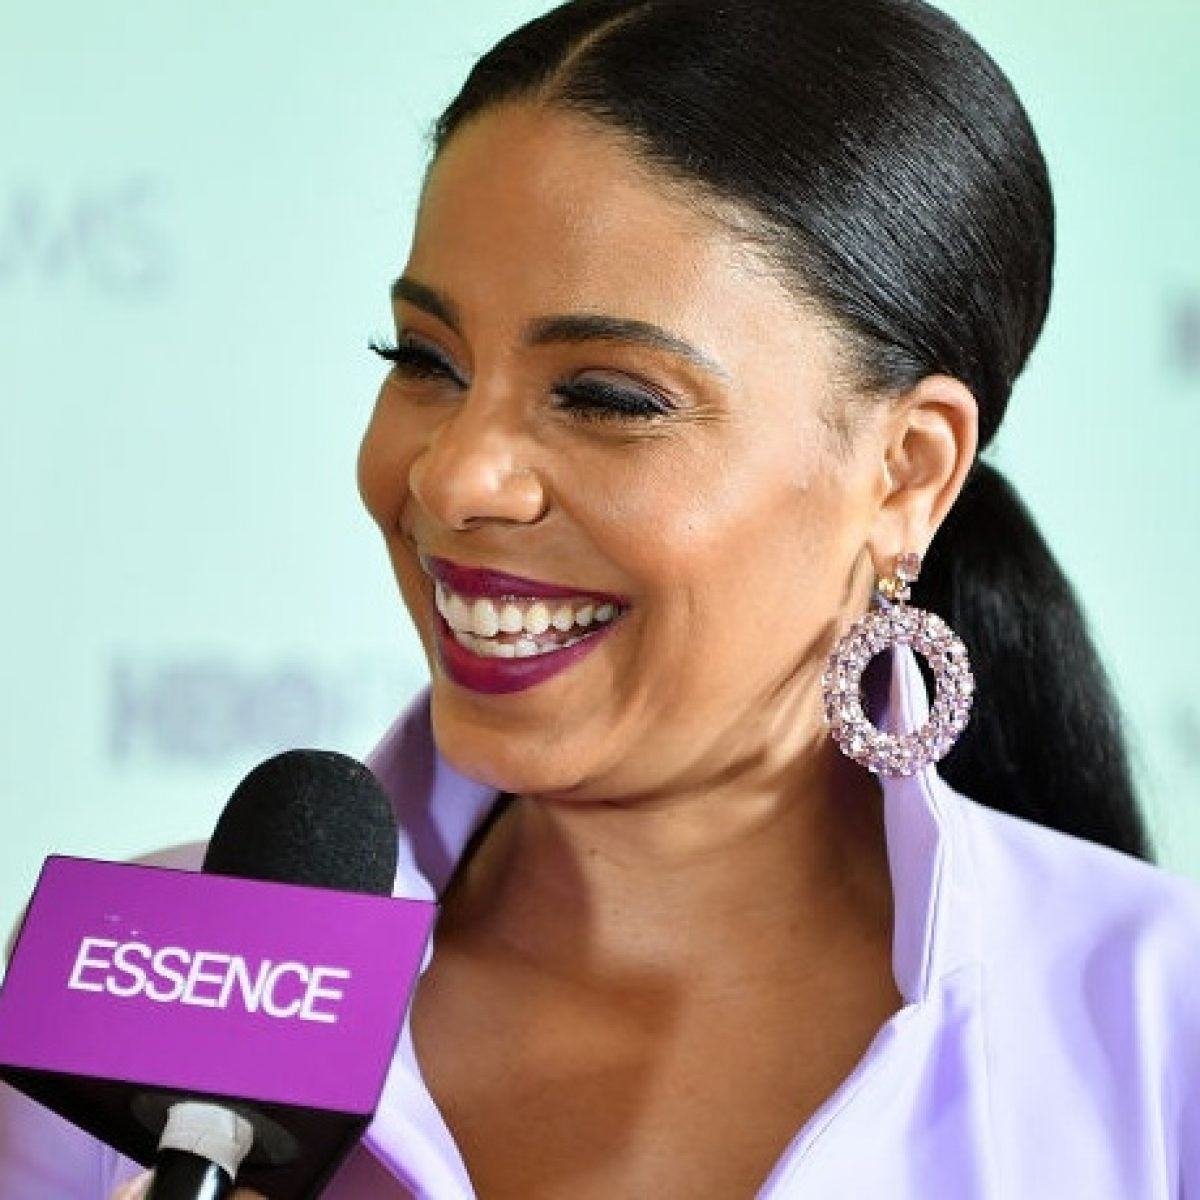 Twinning! Sanaa Lathan And Her Mom Look Exactly Alike In Recent Photo